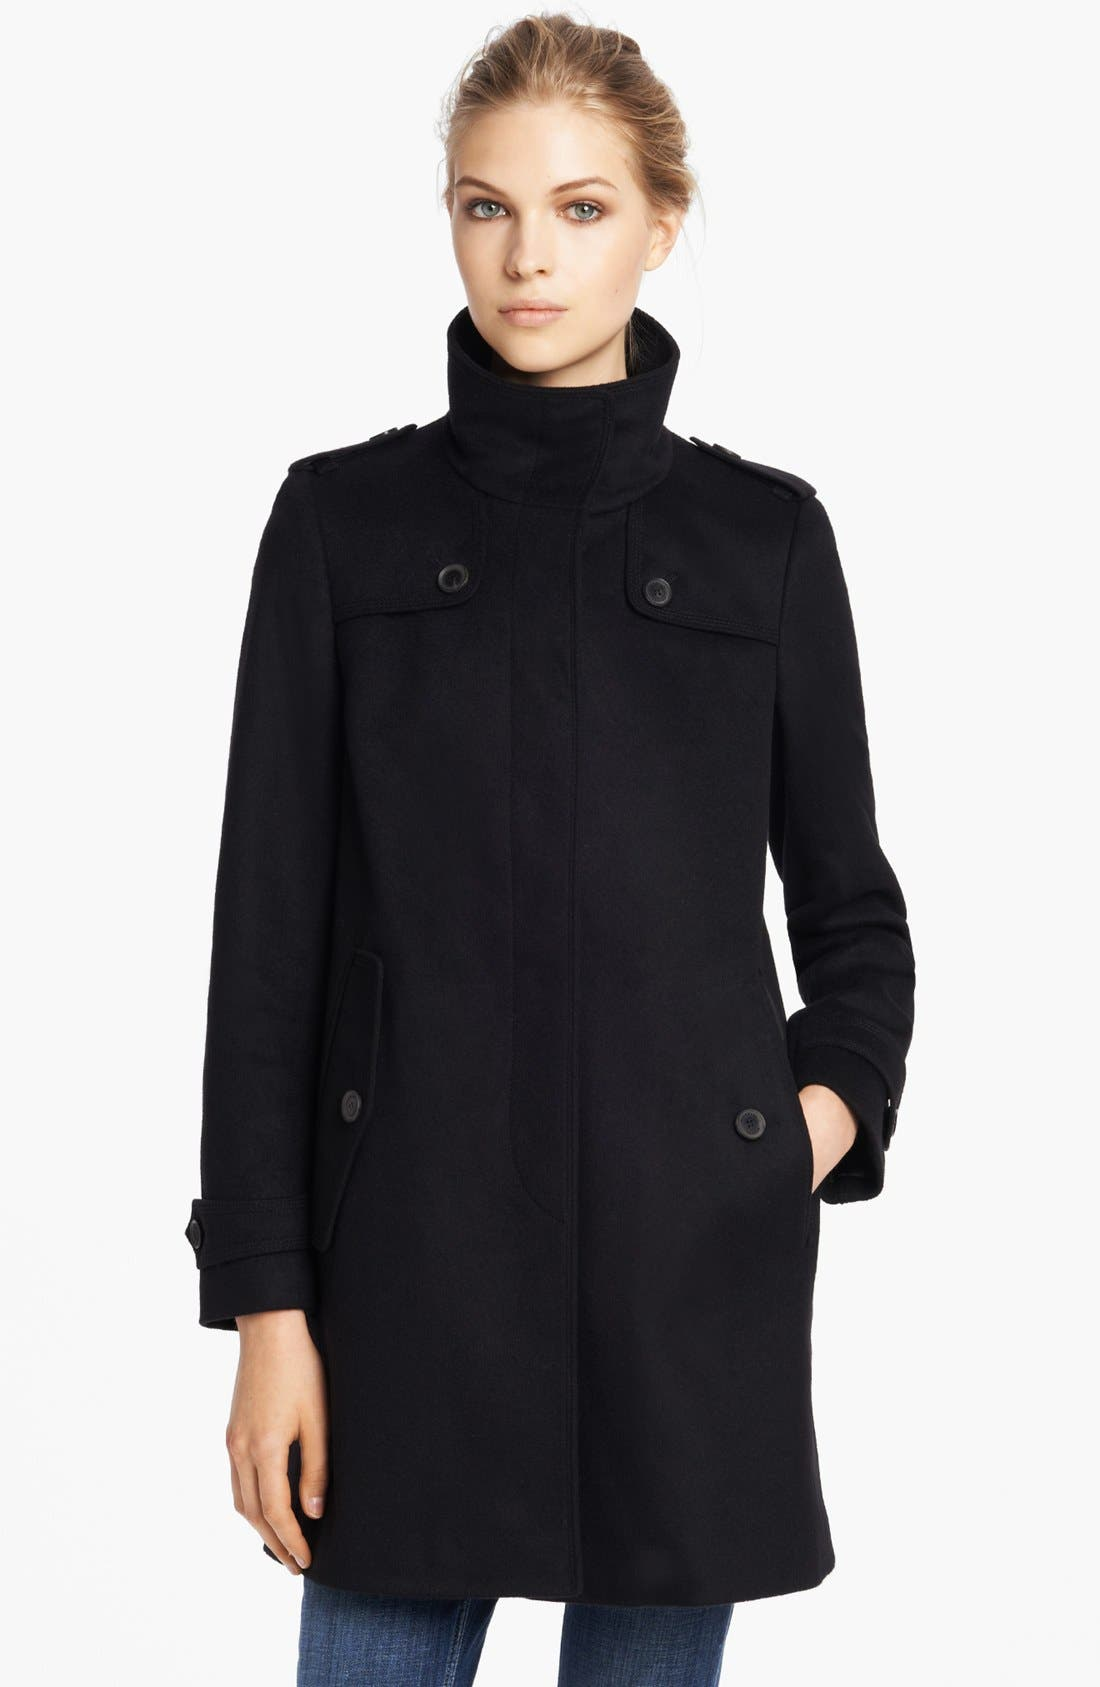 Alternate Image 1 Selected - Burberry London Wool & Cashmere Caban Coat